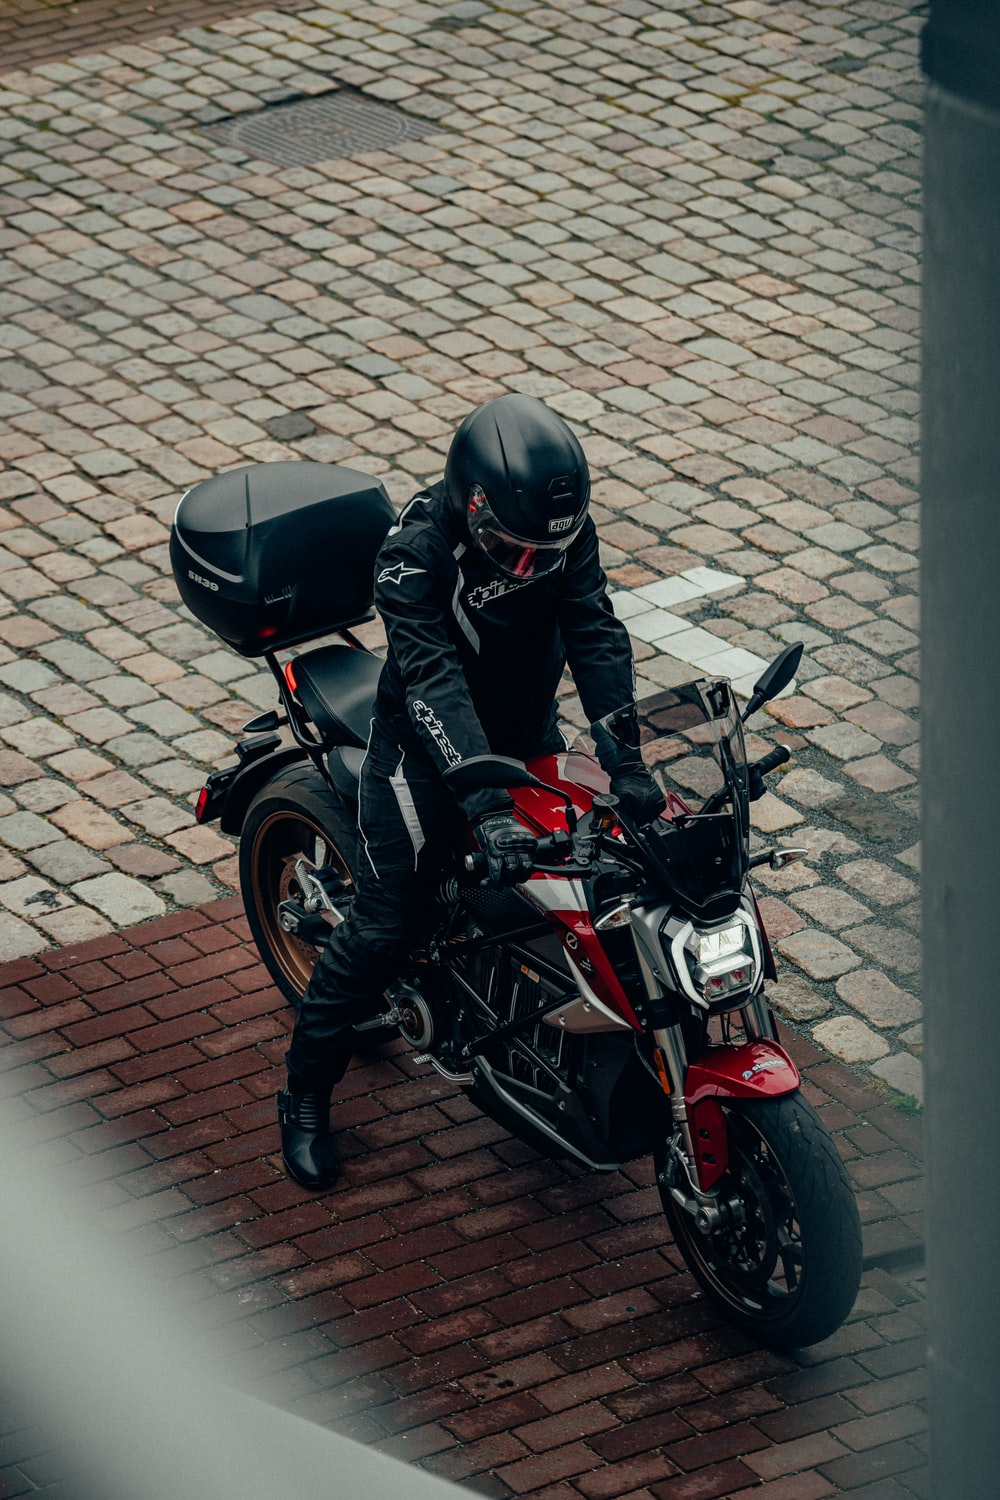 man in black leather jacket and black helmet riding red and black motorcycle